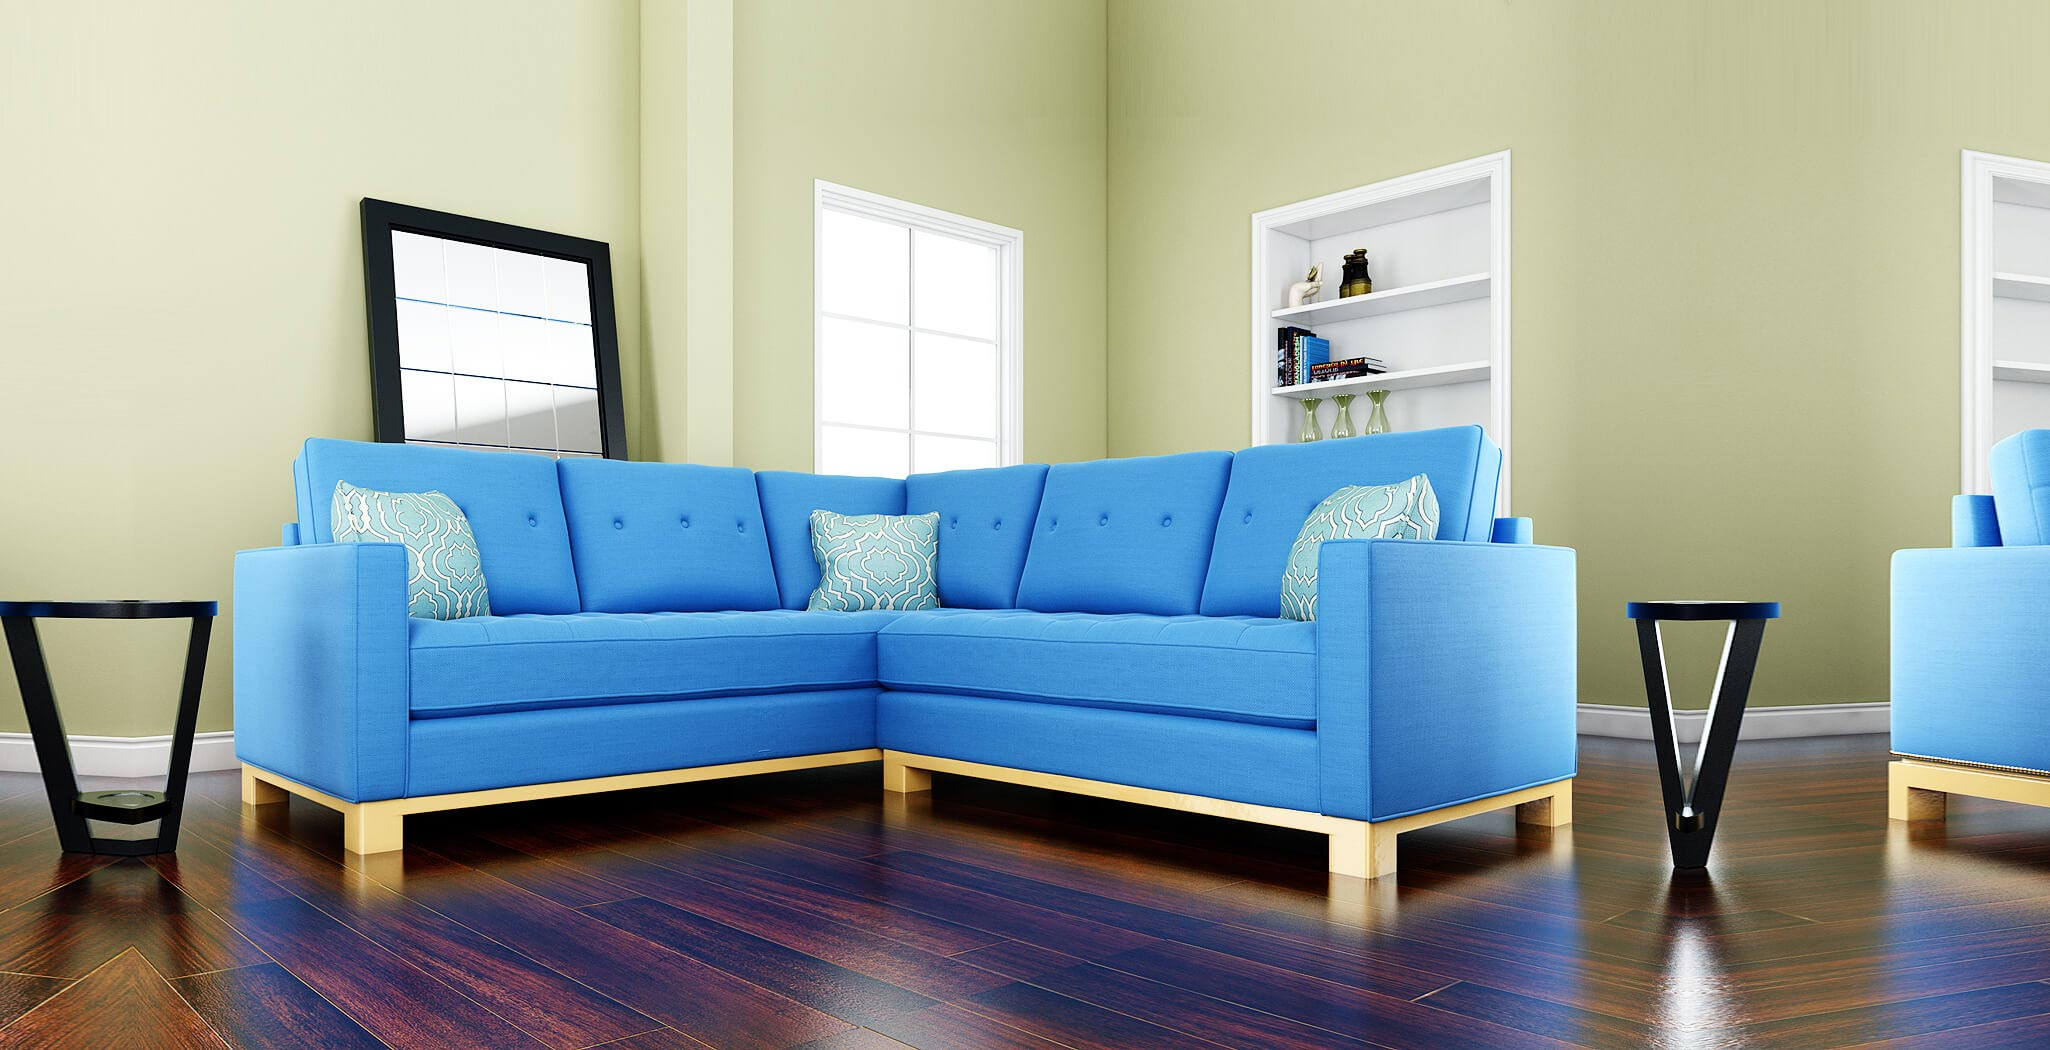 syros sectional furniture gallery 2